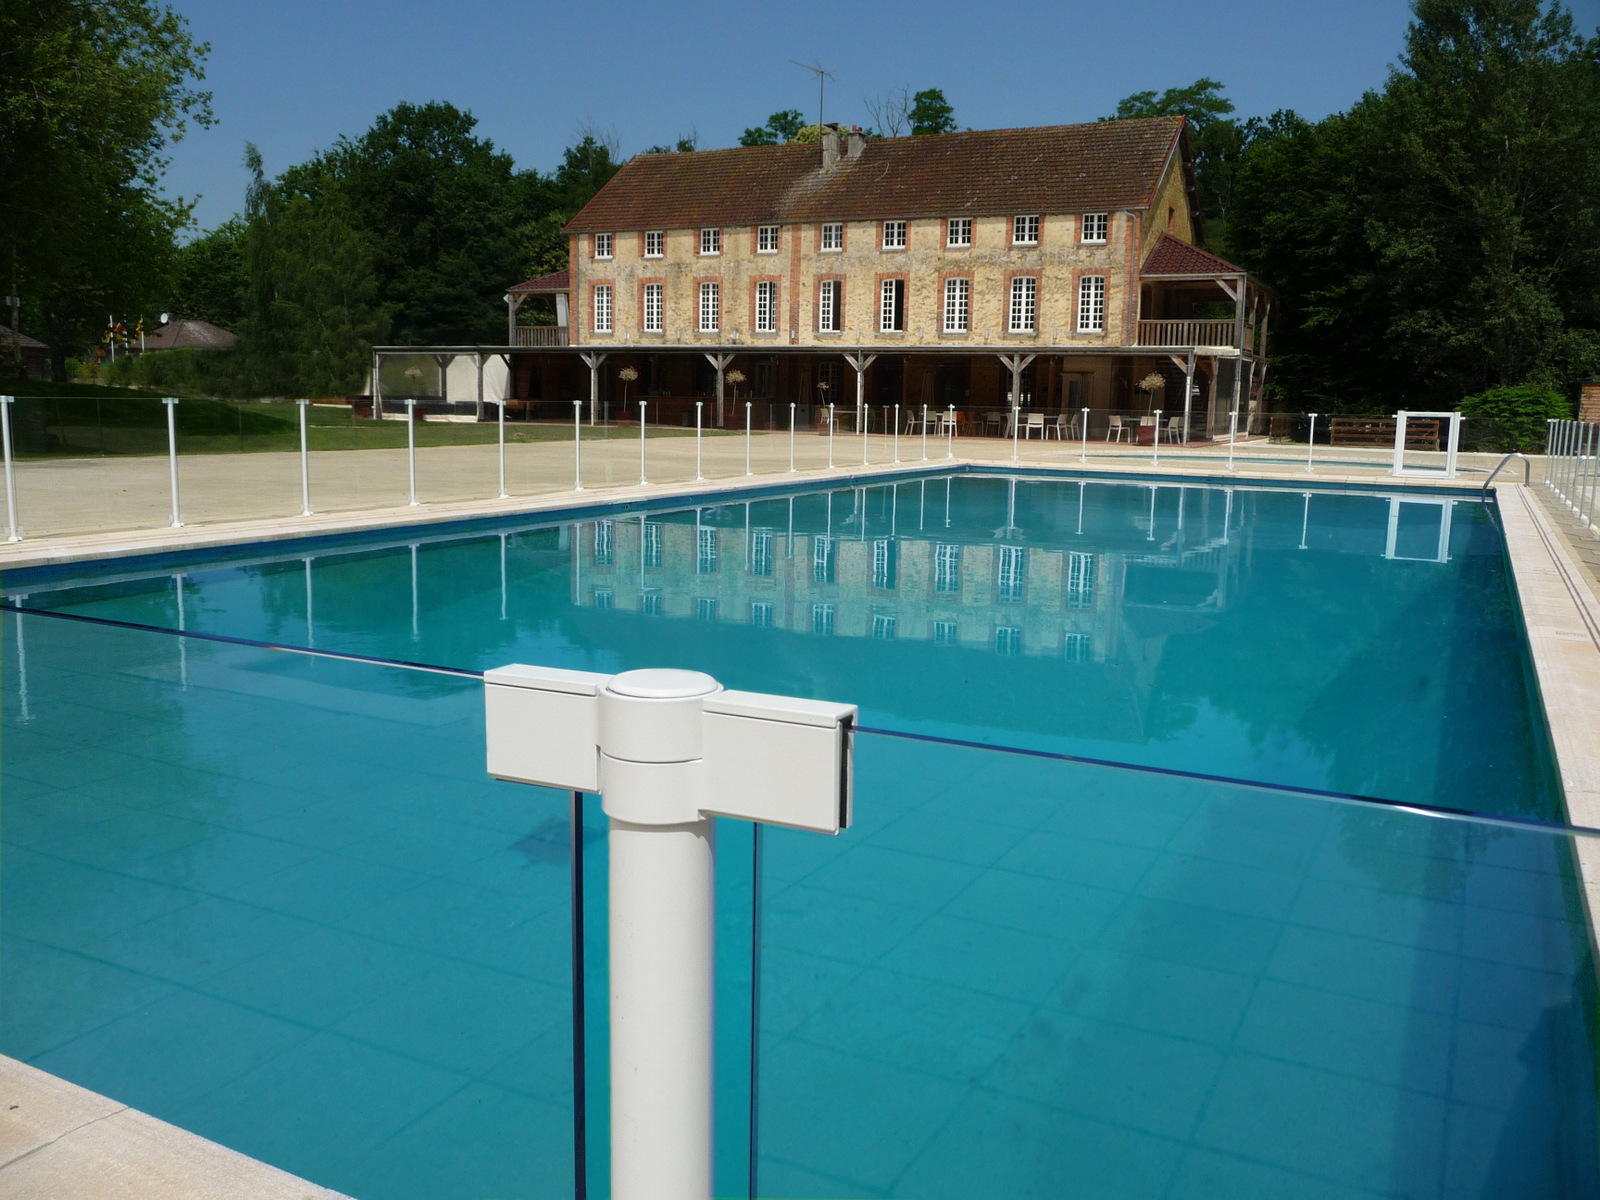 Barri re de piscine en aluminium et protection aluminium de piscine - Barriere piscine plexiglas lille ...